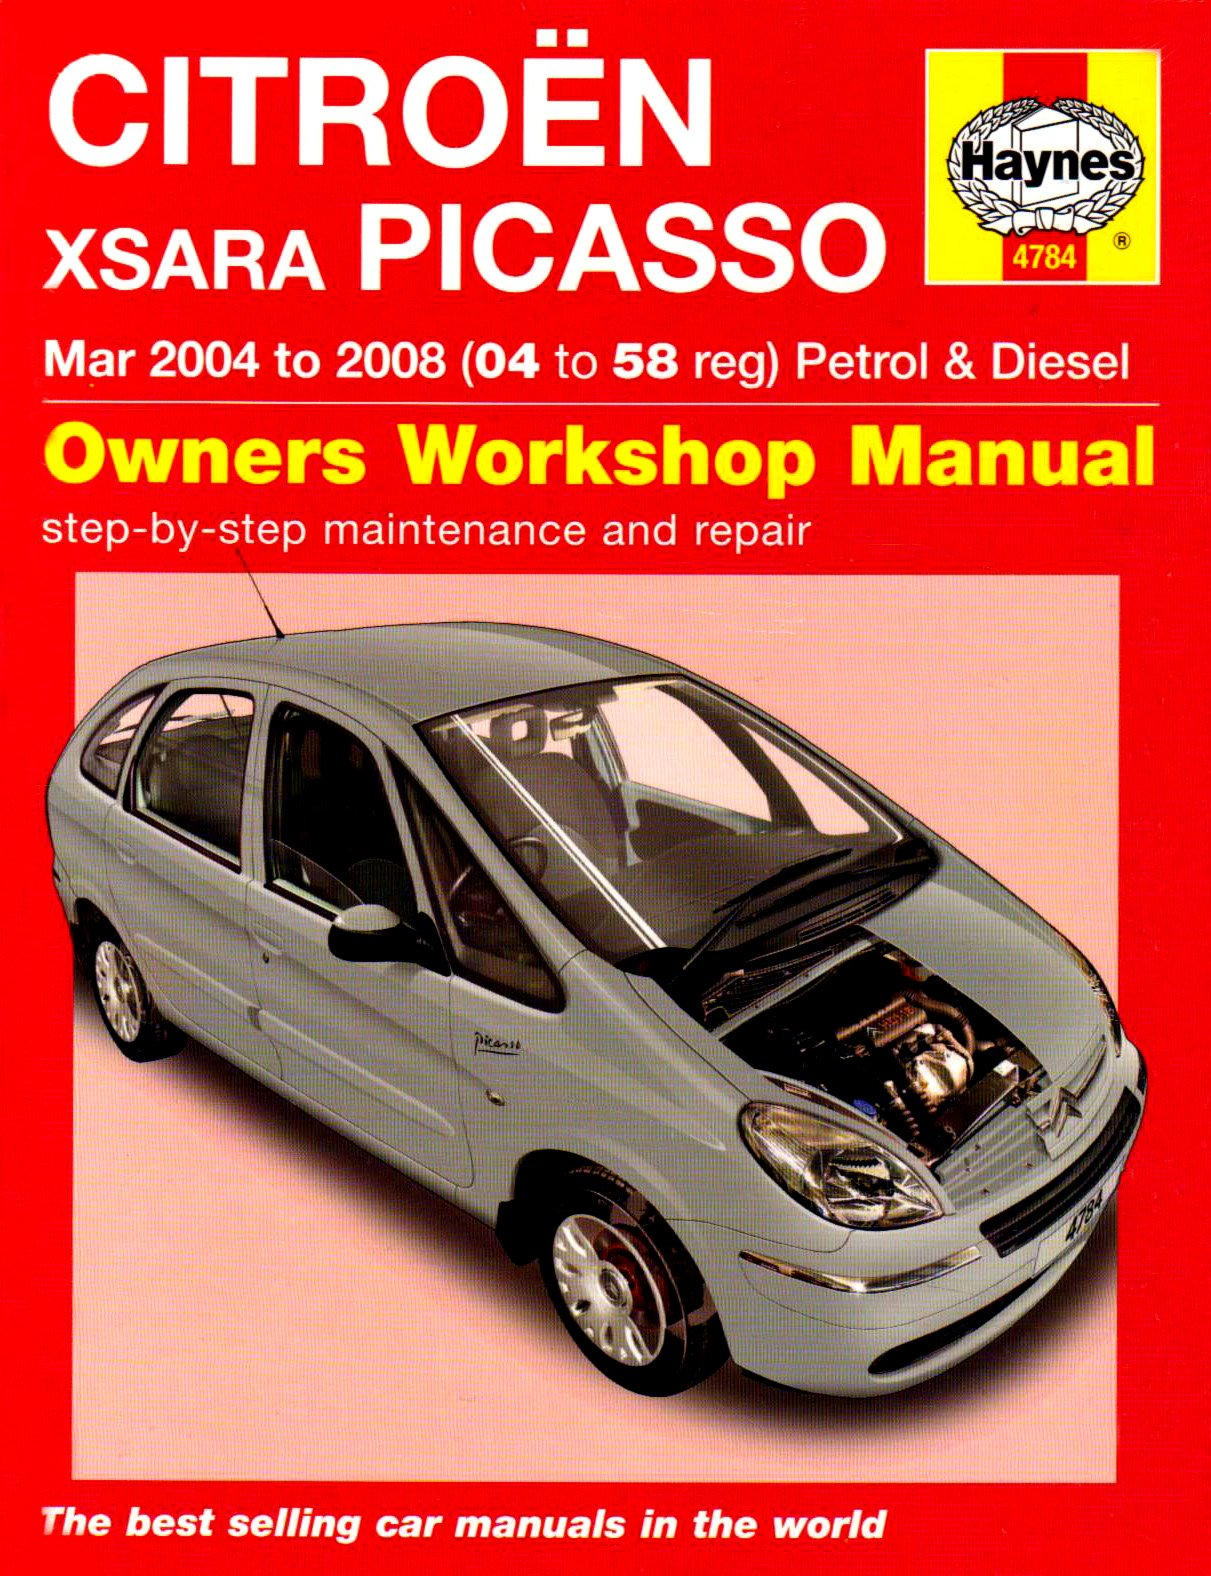 citroen xsara picasso petrol and diesel service and repair manual rh amazon co uk Citroen C3 Picasso Citroen Xsara Picasso Specifications